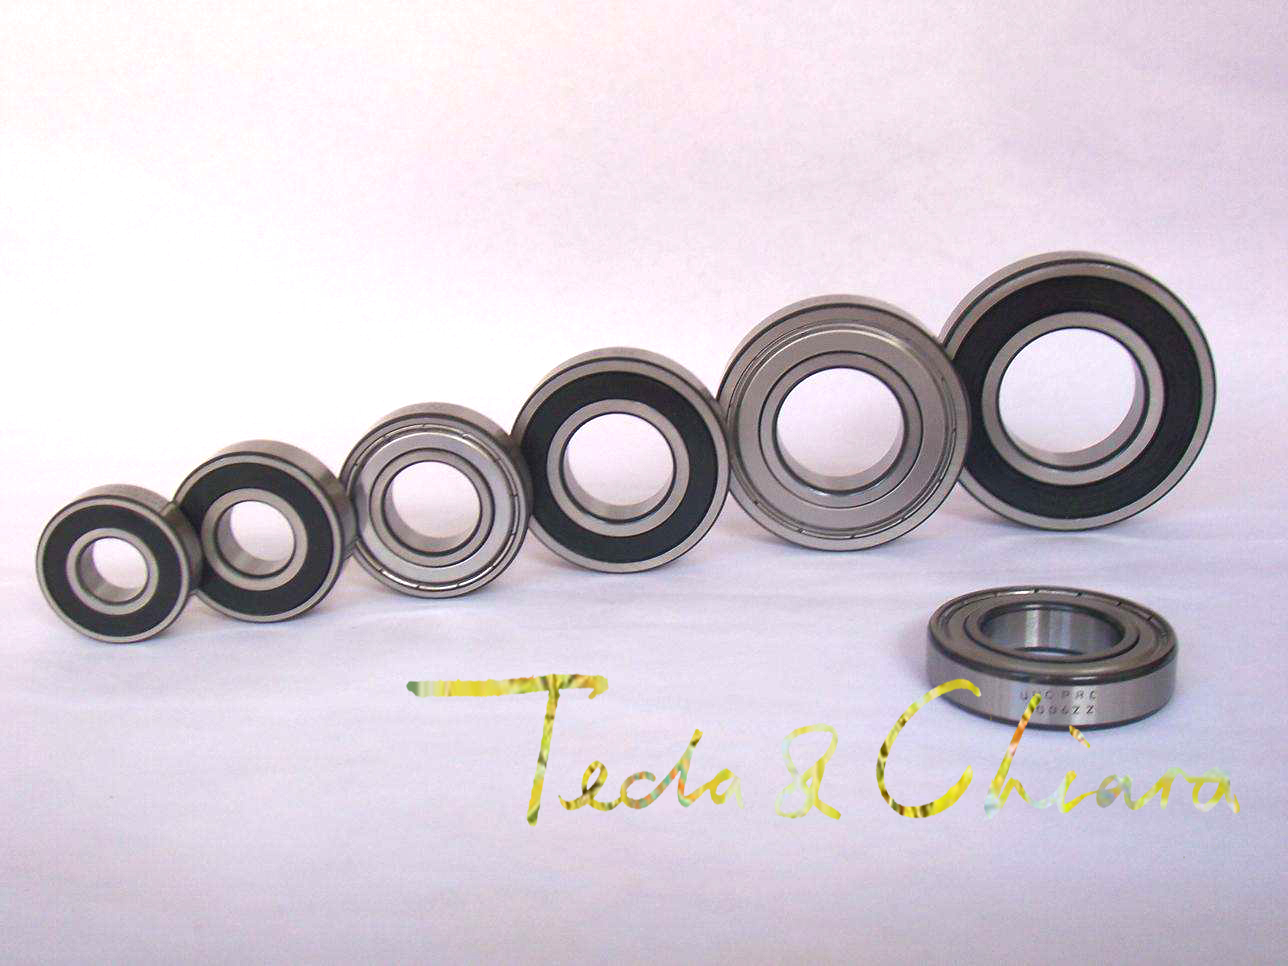 6802 6802ZZ 6802RS 6802-2Z 6802Z 6802-2RS ZZ RS RZ 2RZ Deep Groove Ball Bearings 15 x 24 x 5mm High Quality 6902 6902zz 6902rs 6902 2z 6902z 6902 2rs zz rs rz 2rz deep groove ball bearings 15 x 28 x 7mm high quality